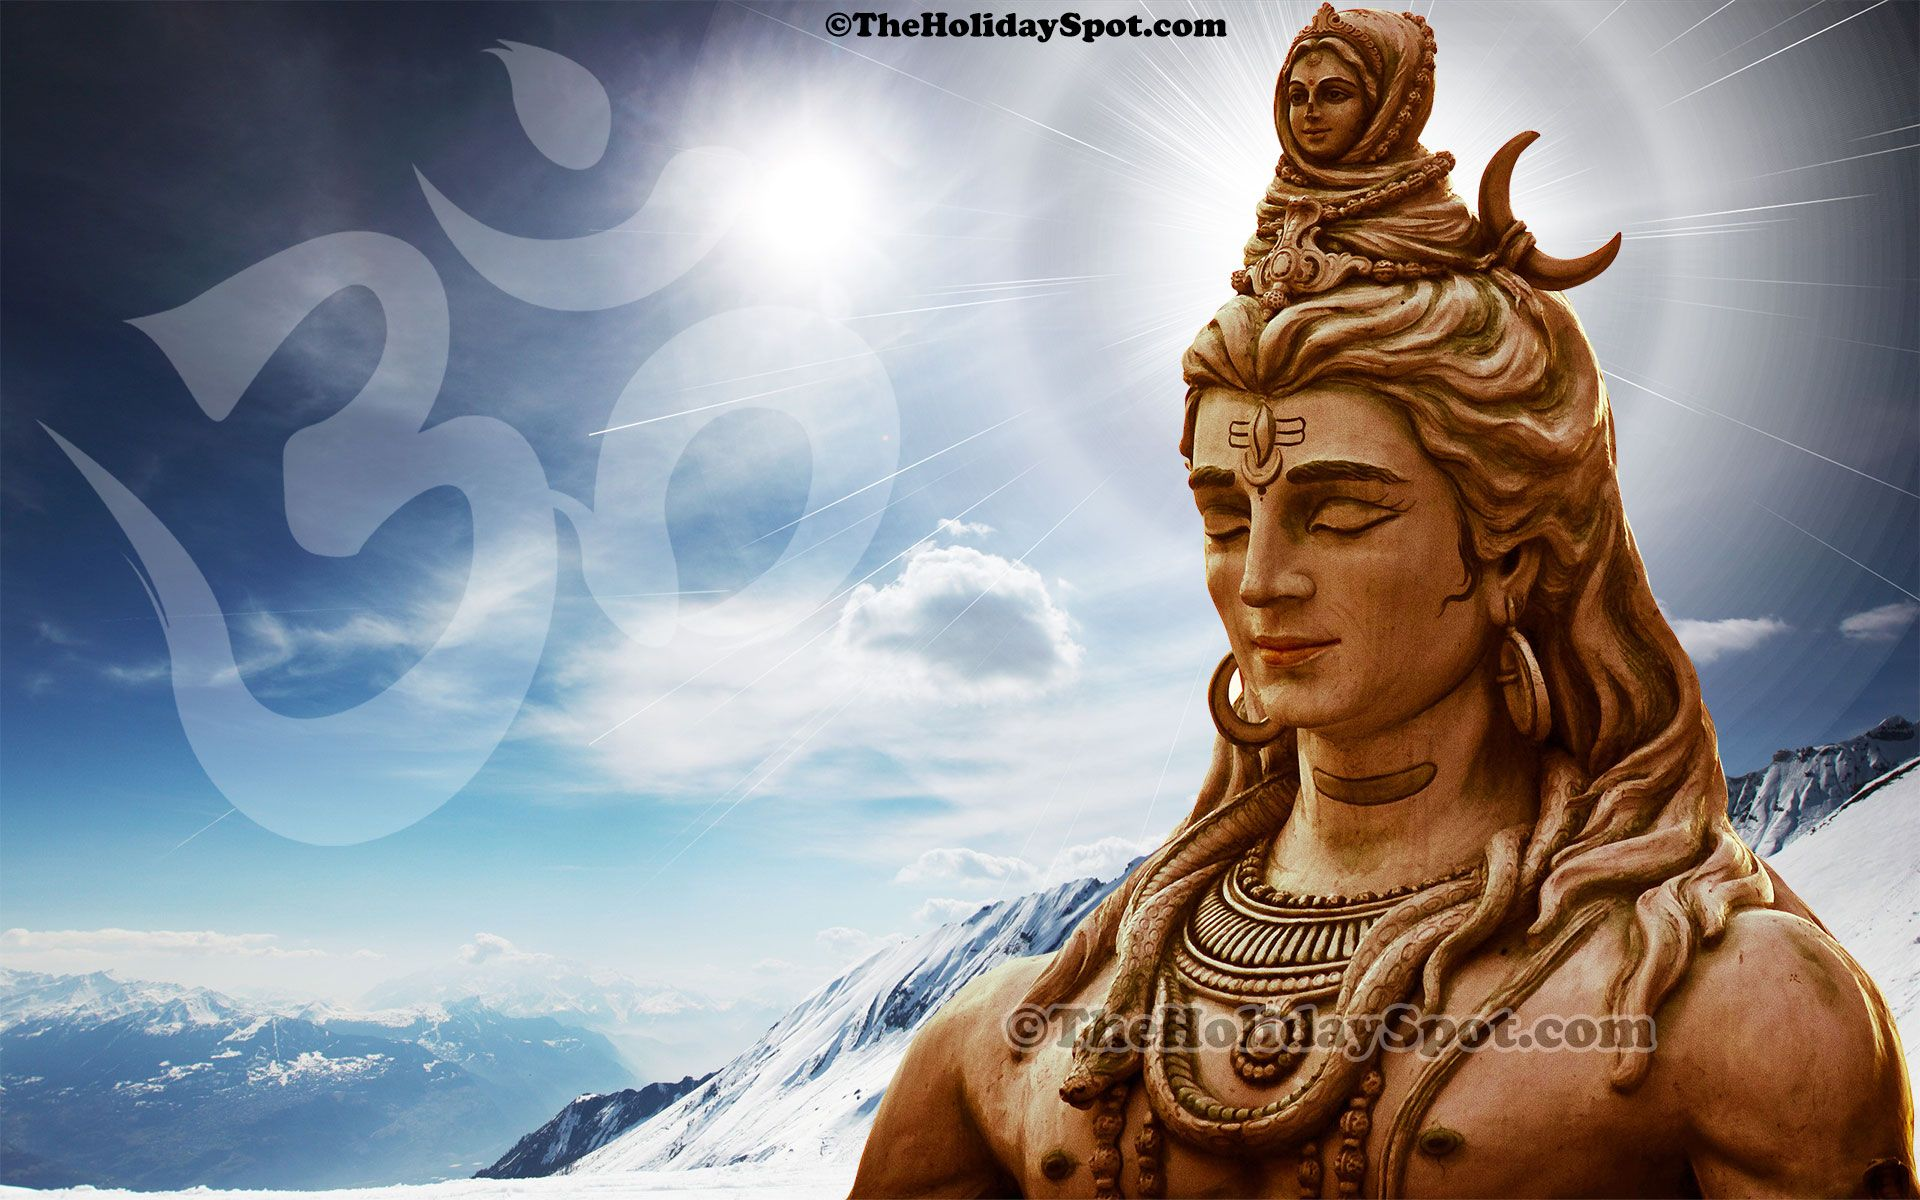 Pin By Tim Russ On Did You Know Facts In 2020 Lord Shiva Hd Wallpaper Shiva Wallpaper Shivratri Wallpaper